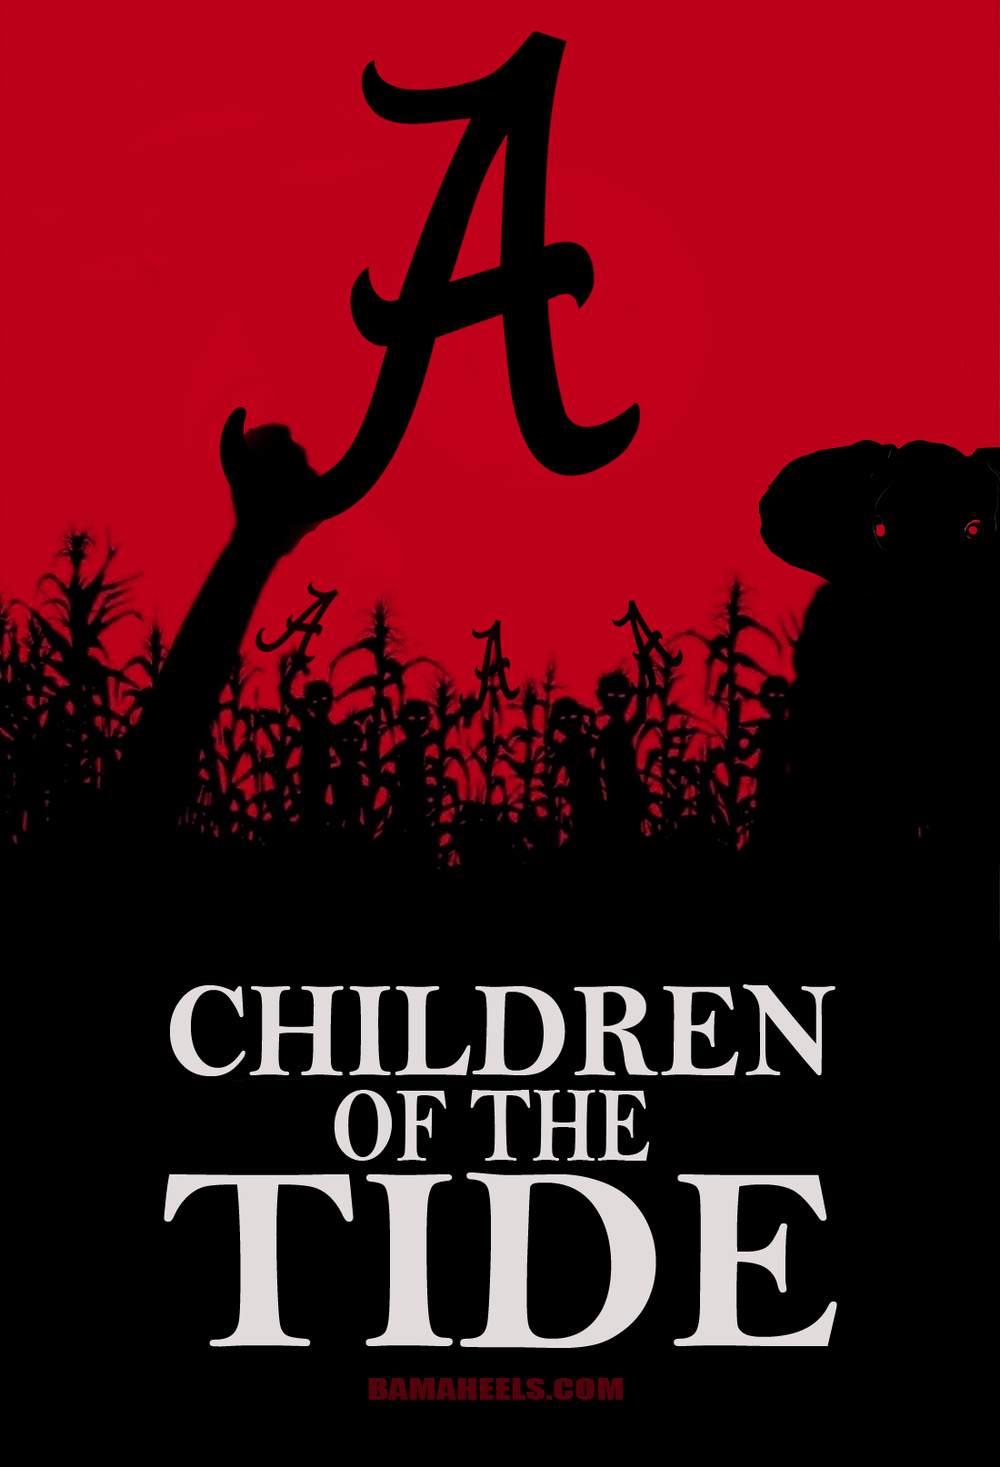 bama-heels-alabama-heels-children-of-the-corn.jpg